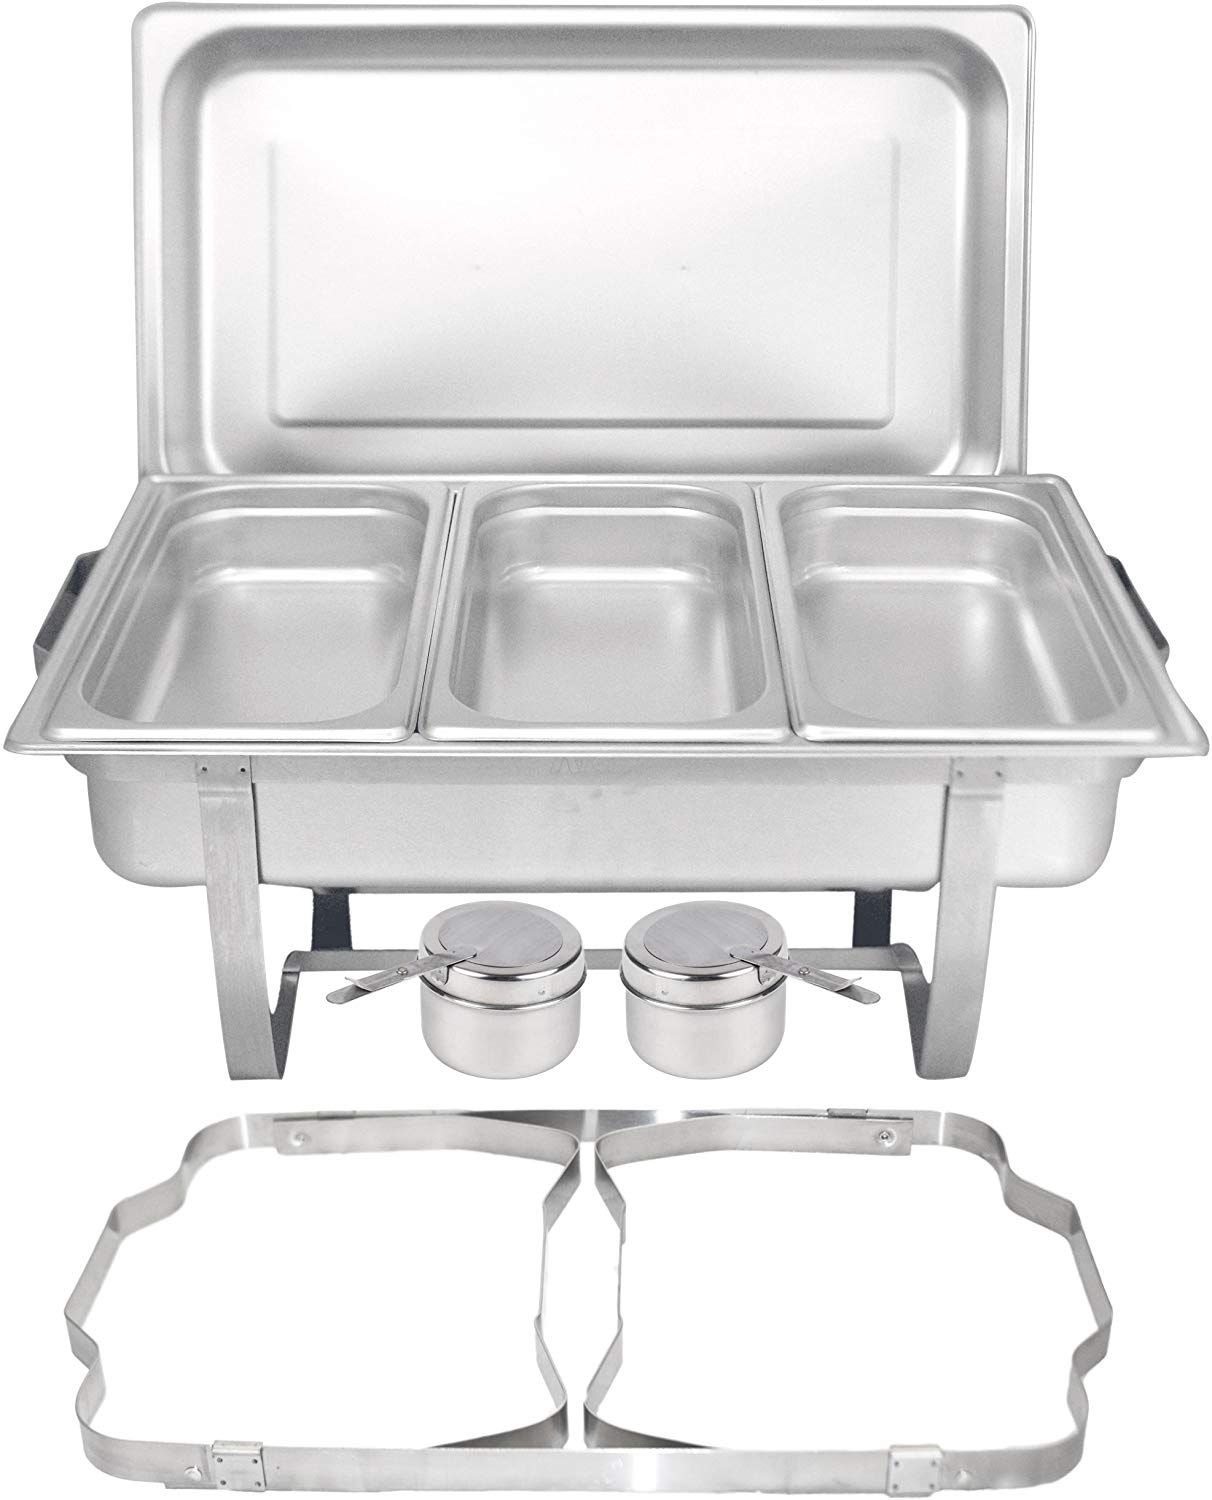 Tiger Chef Stainless Steel Chafer